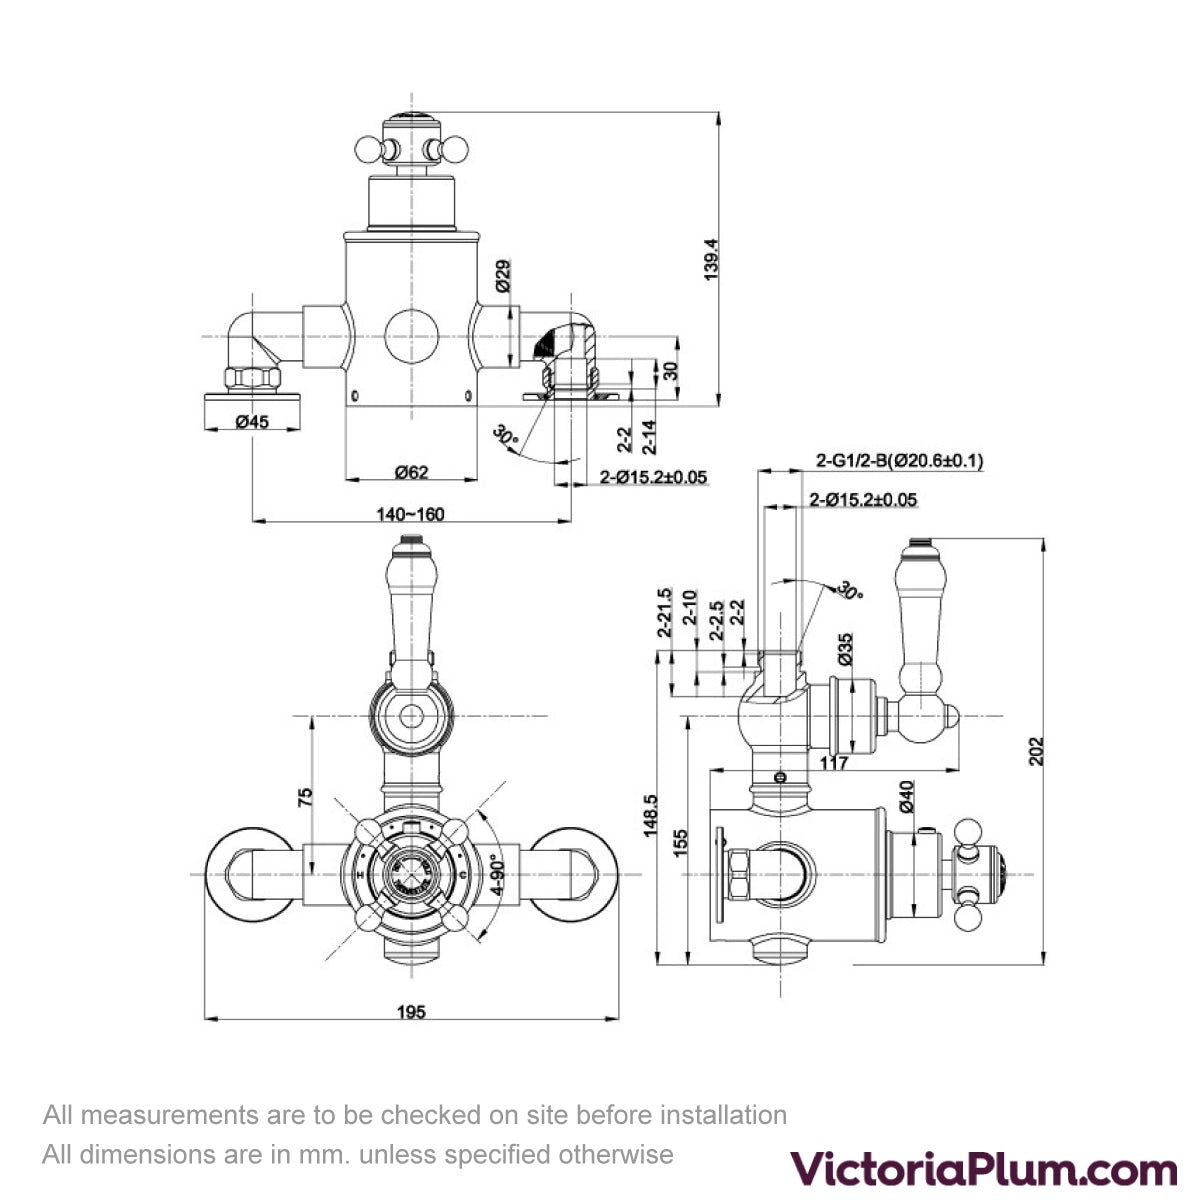 Dimensions for The Bath Co. Winchester riser shower system